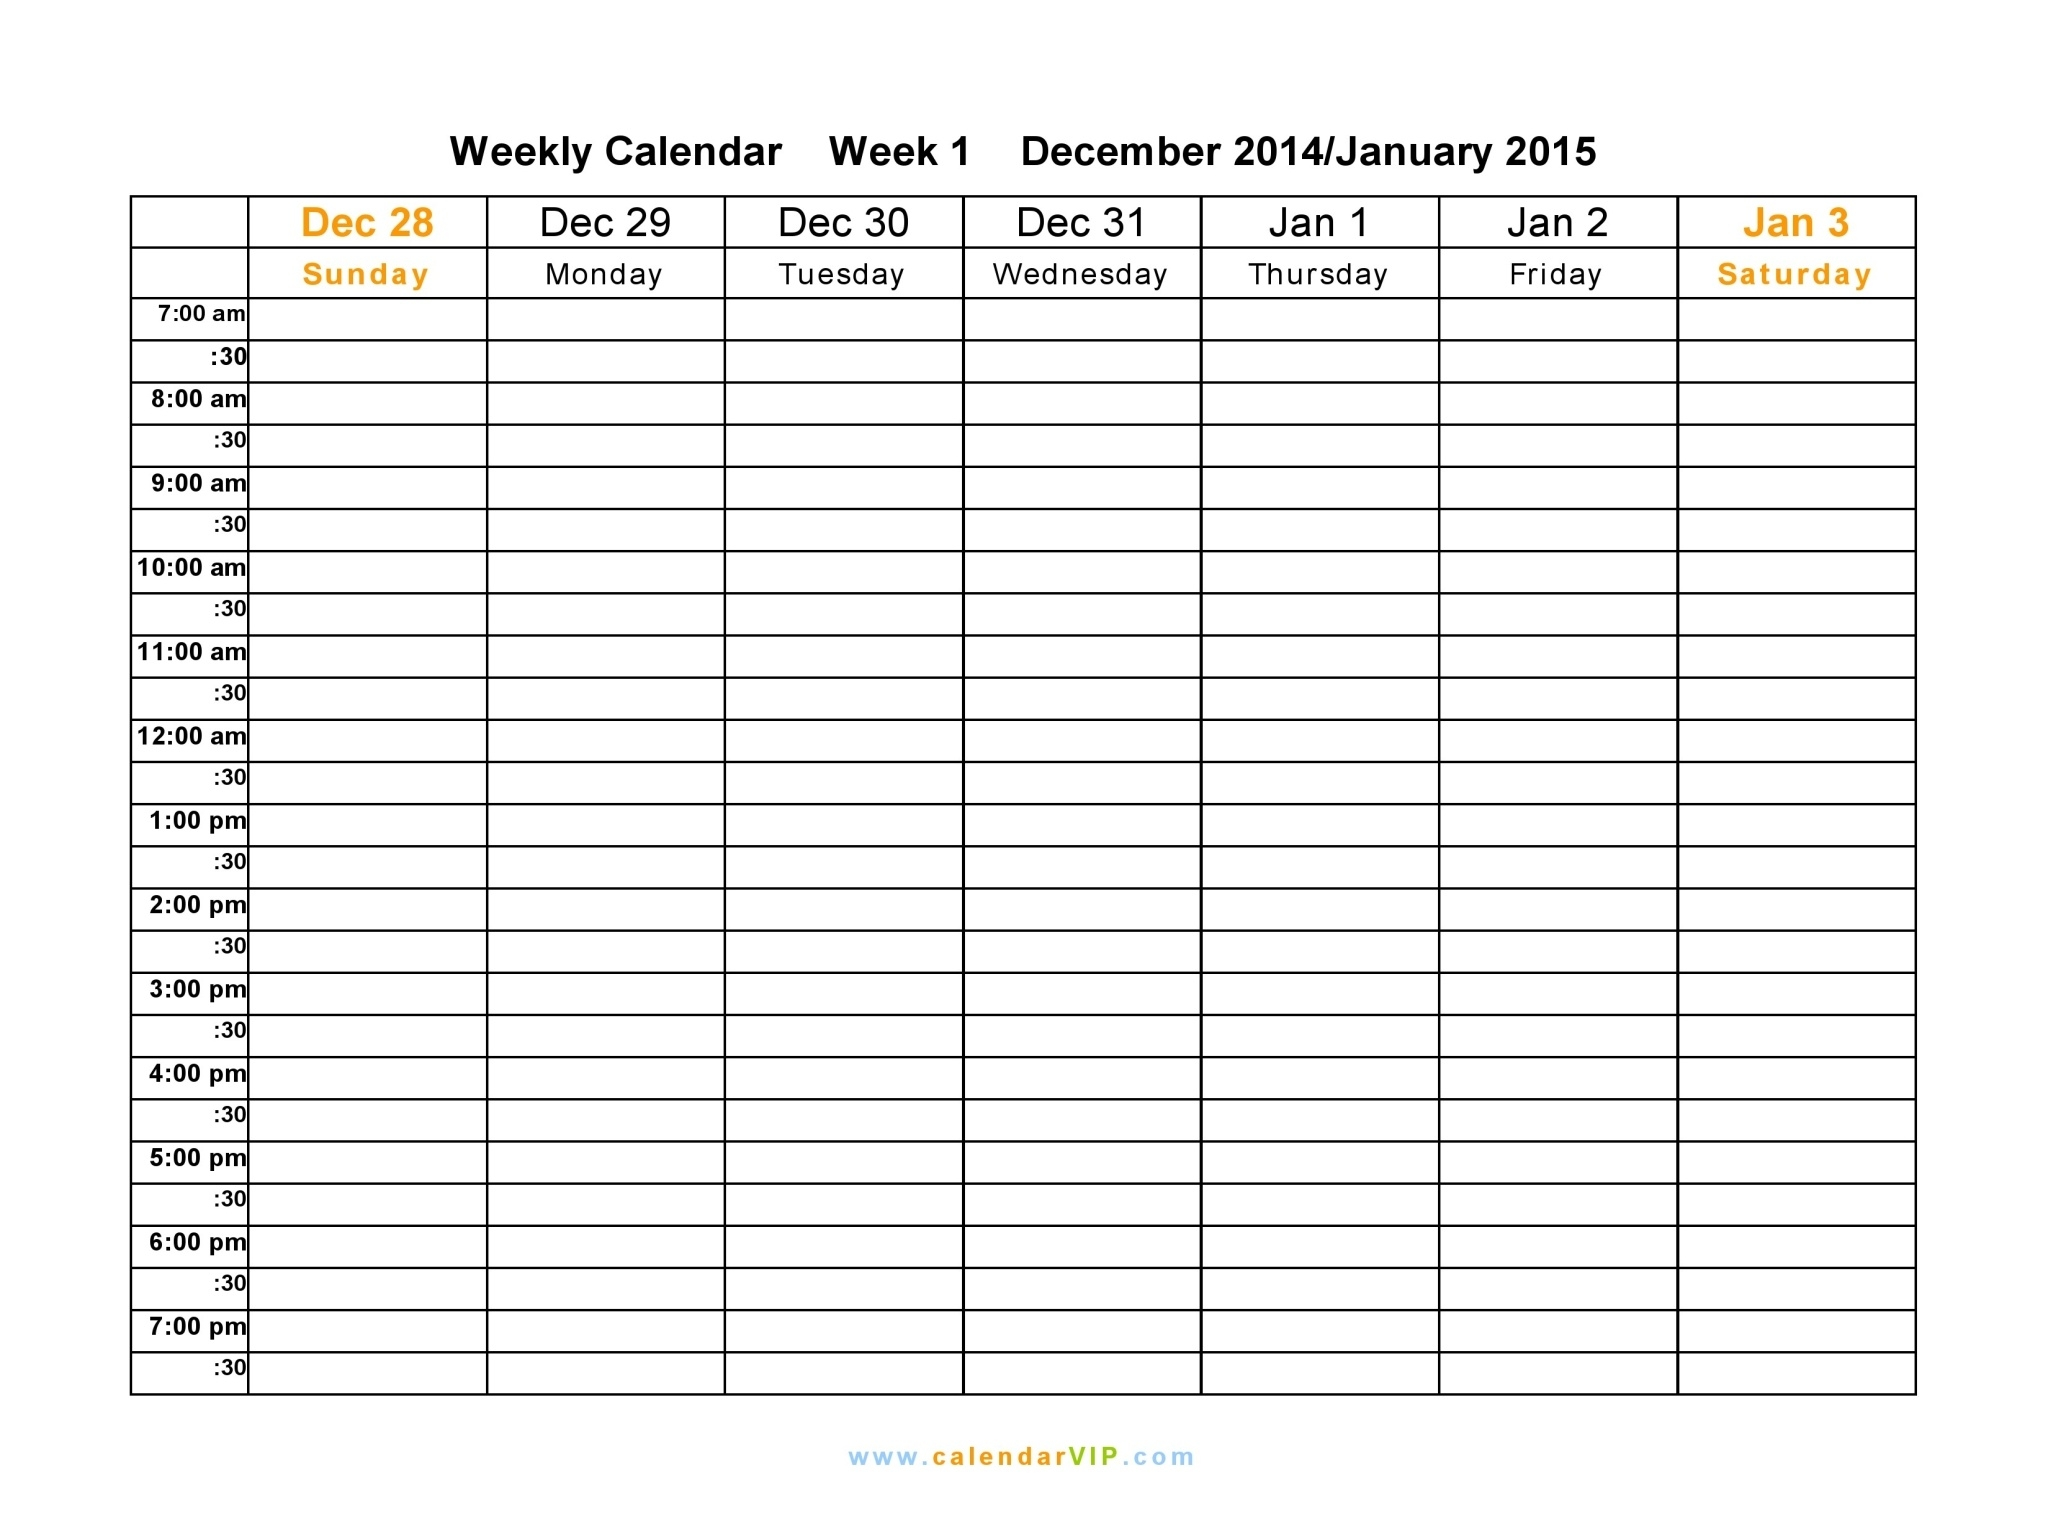 Template For A Weekly Schedule - Shefftunes.tk  Free Template For Weekly Schedule